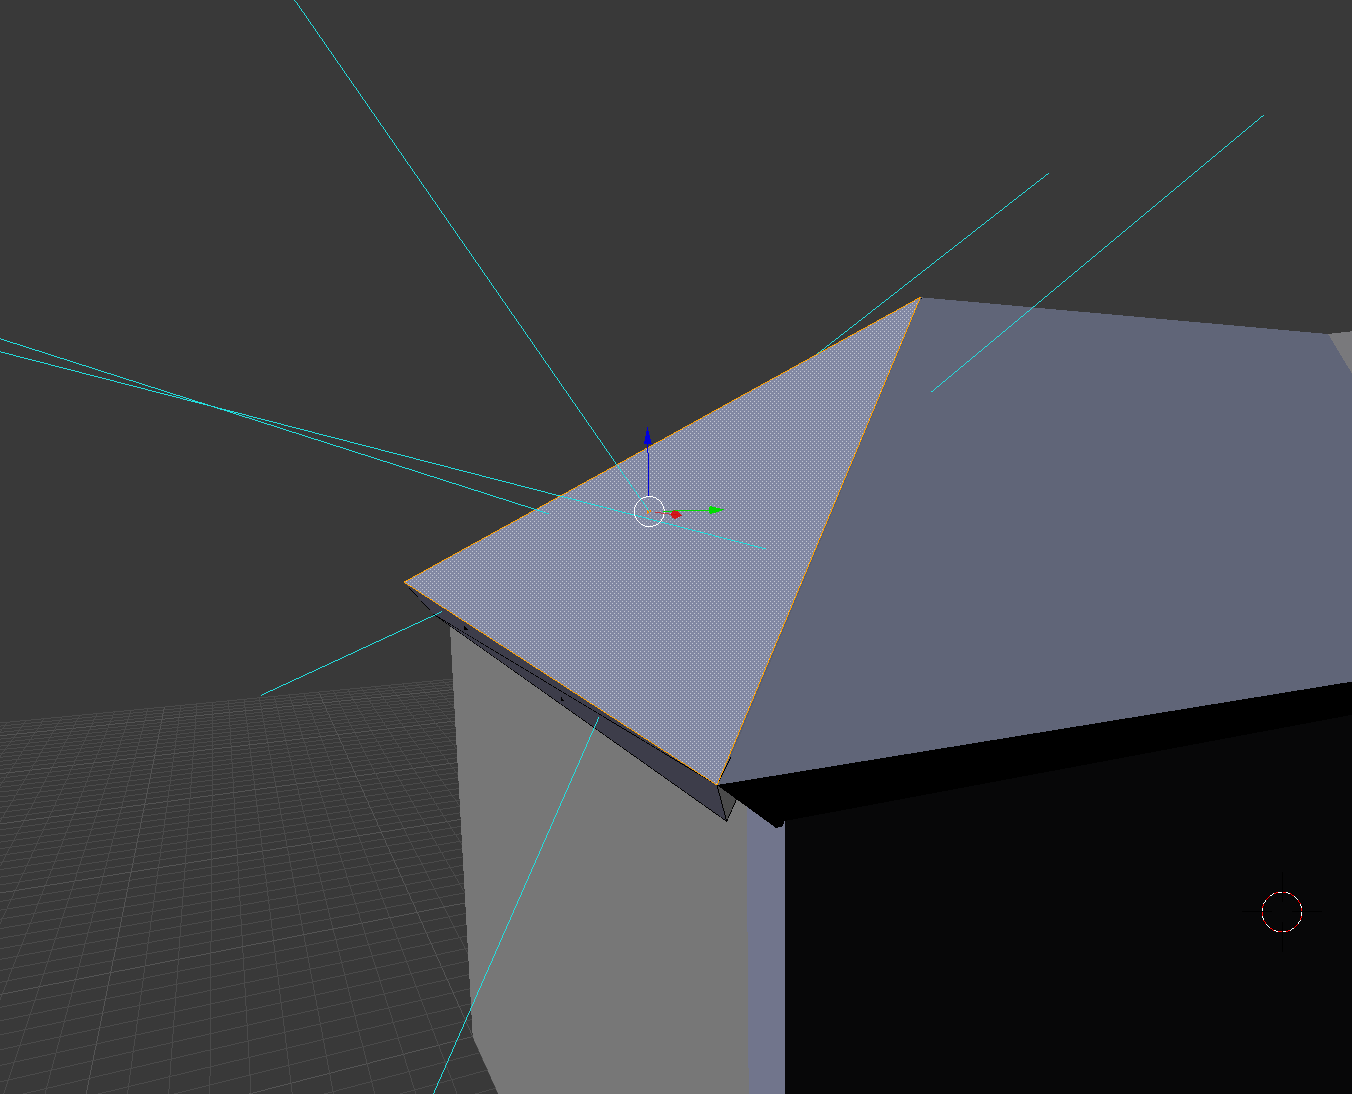 Roof outer face shows in Blender. Normals are shown as well